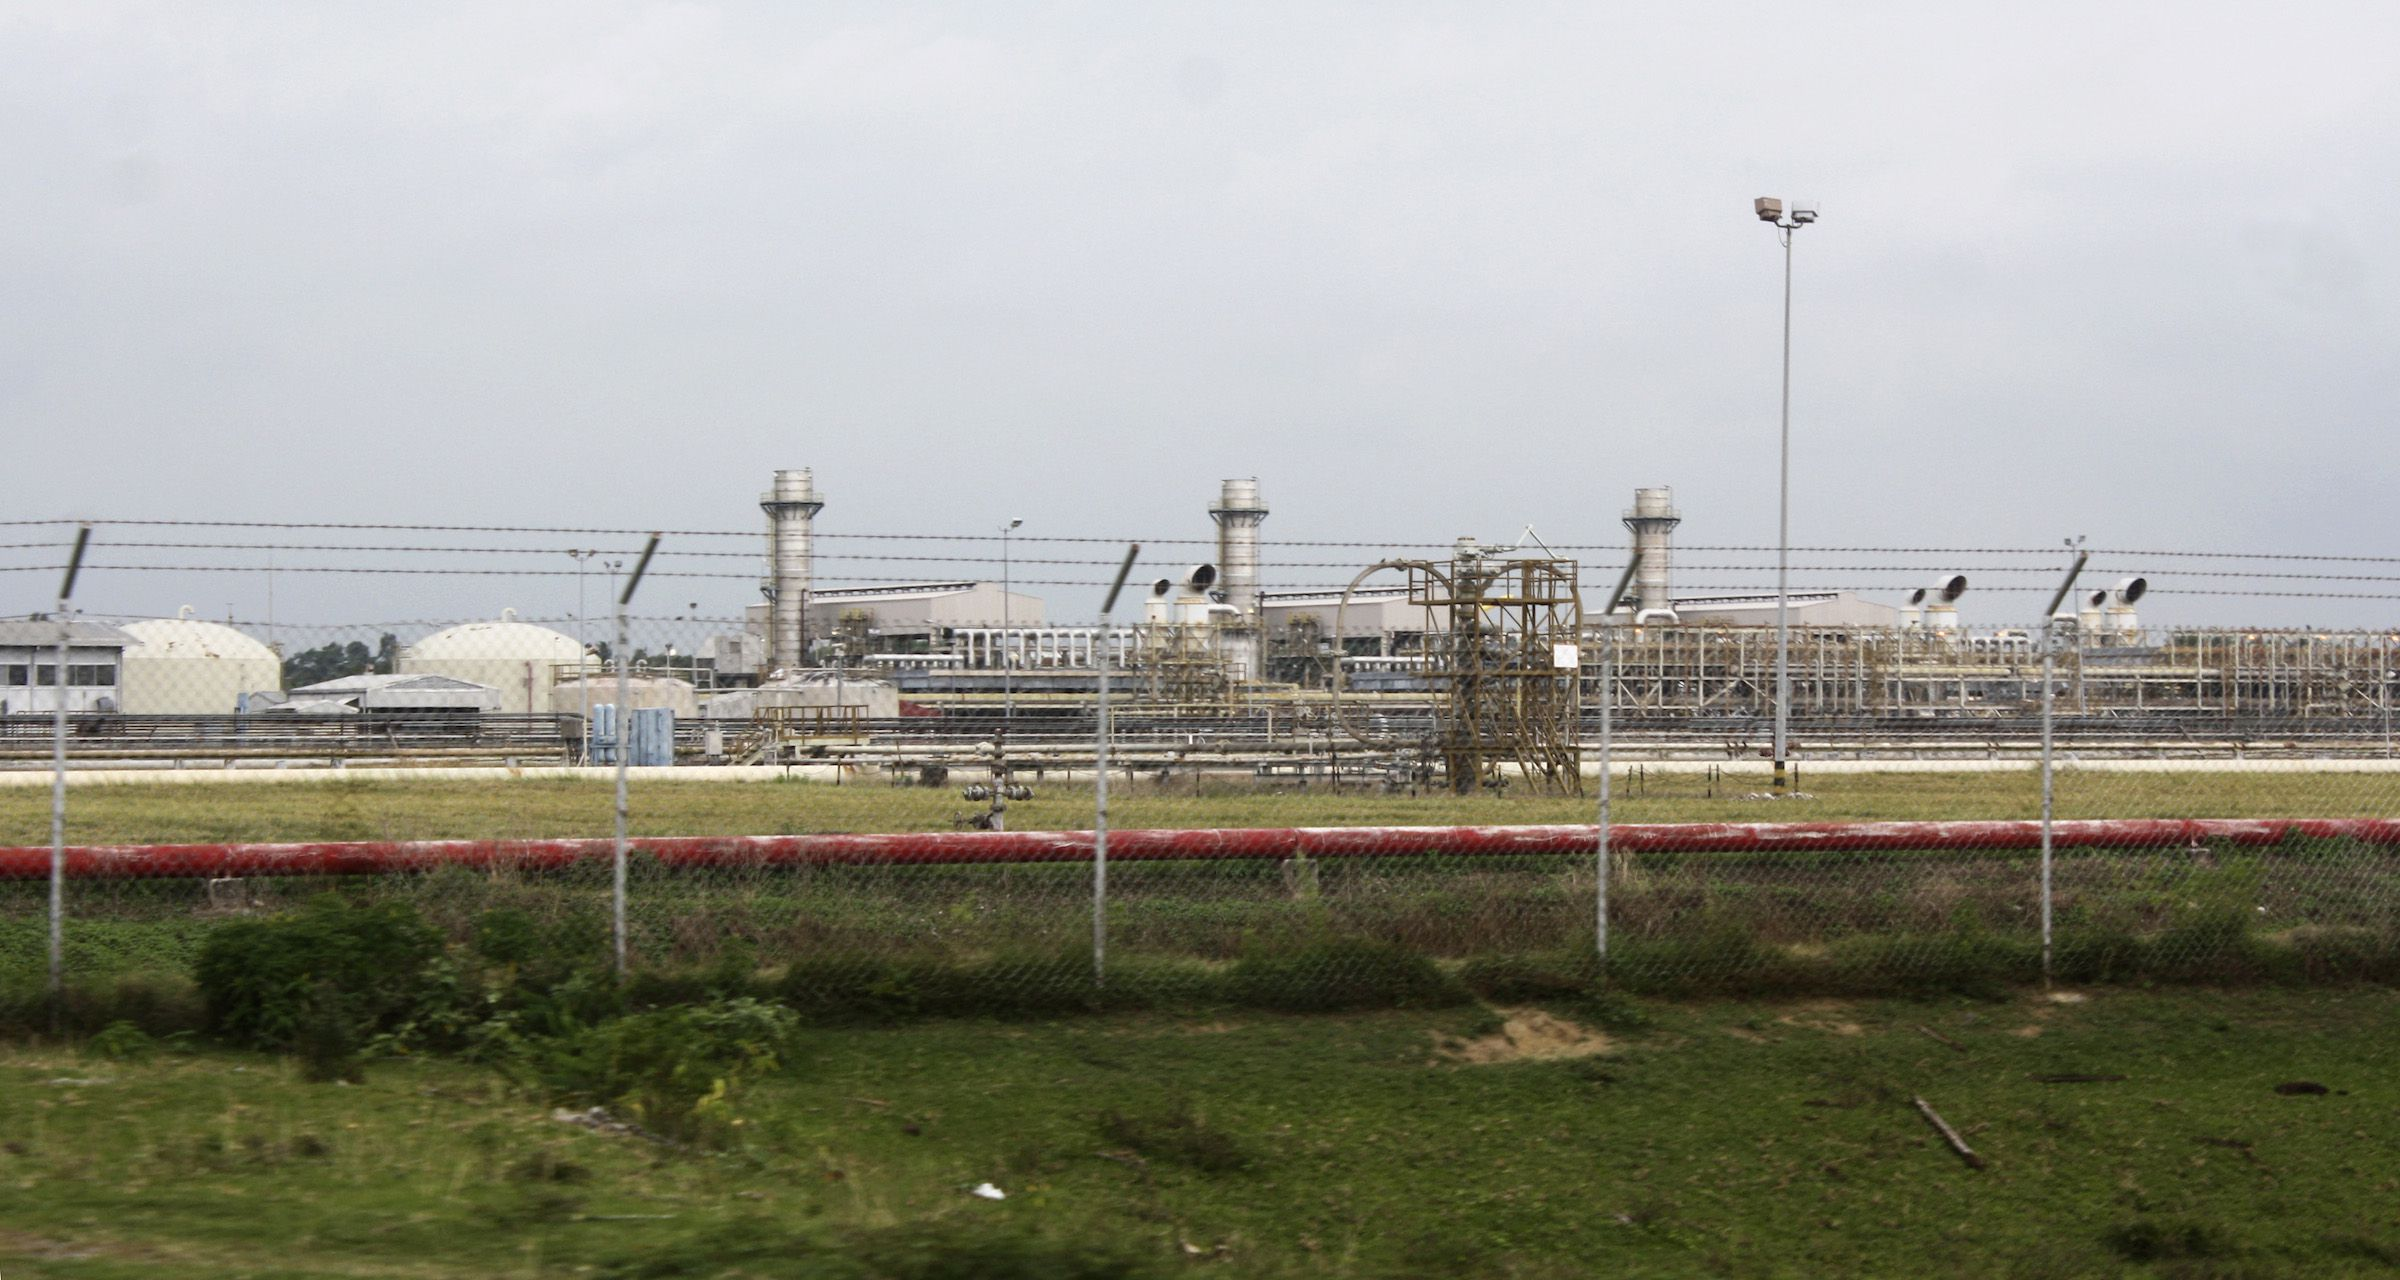 Oil refinery owned by ExxonMobil is seen in Lhokseumawe in Indonesia's Aceh province